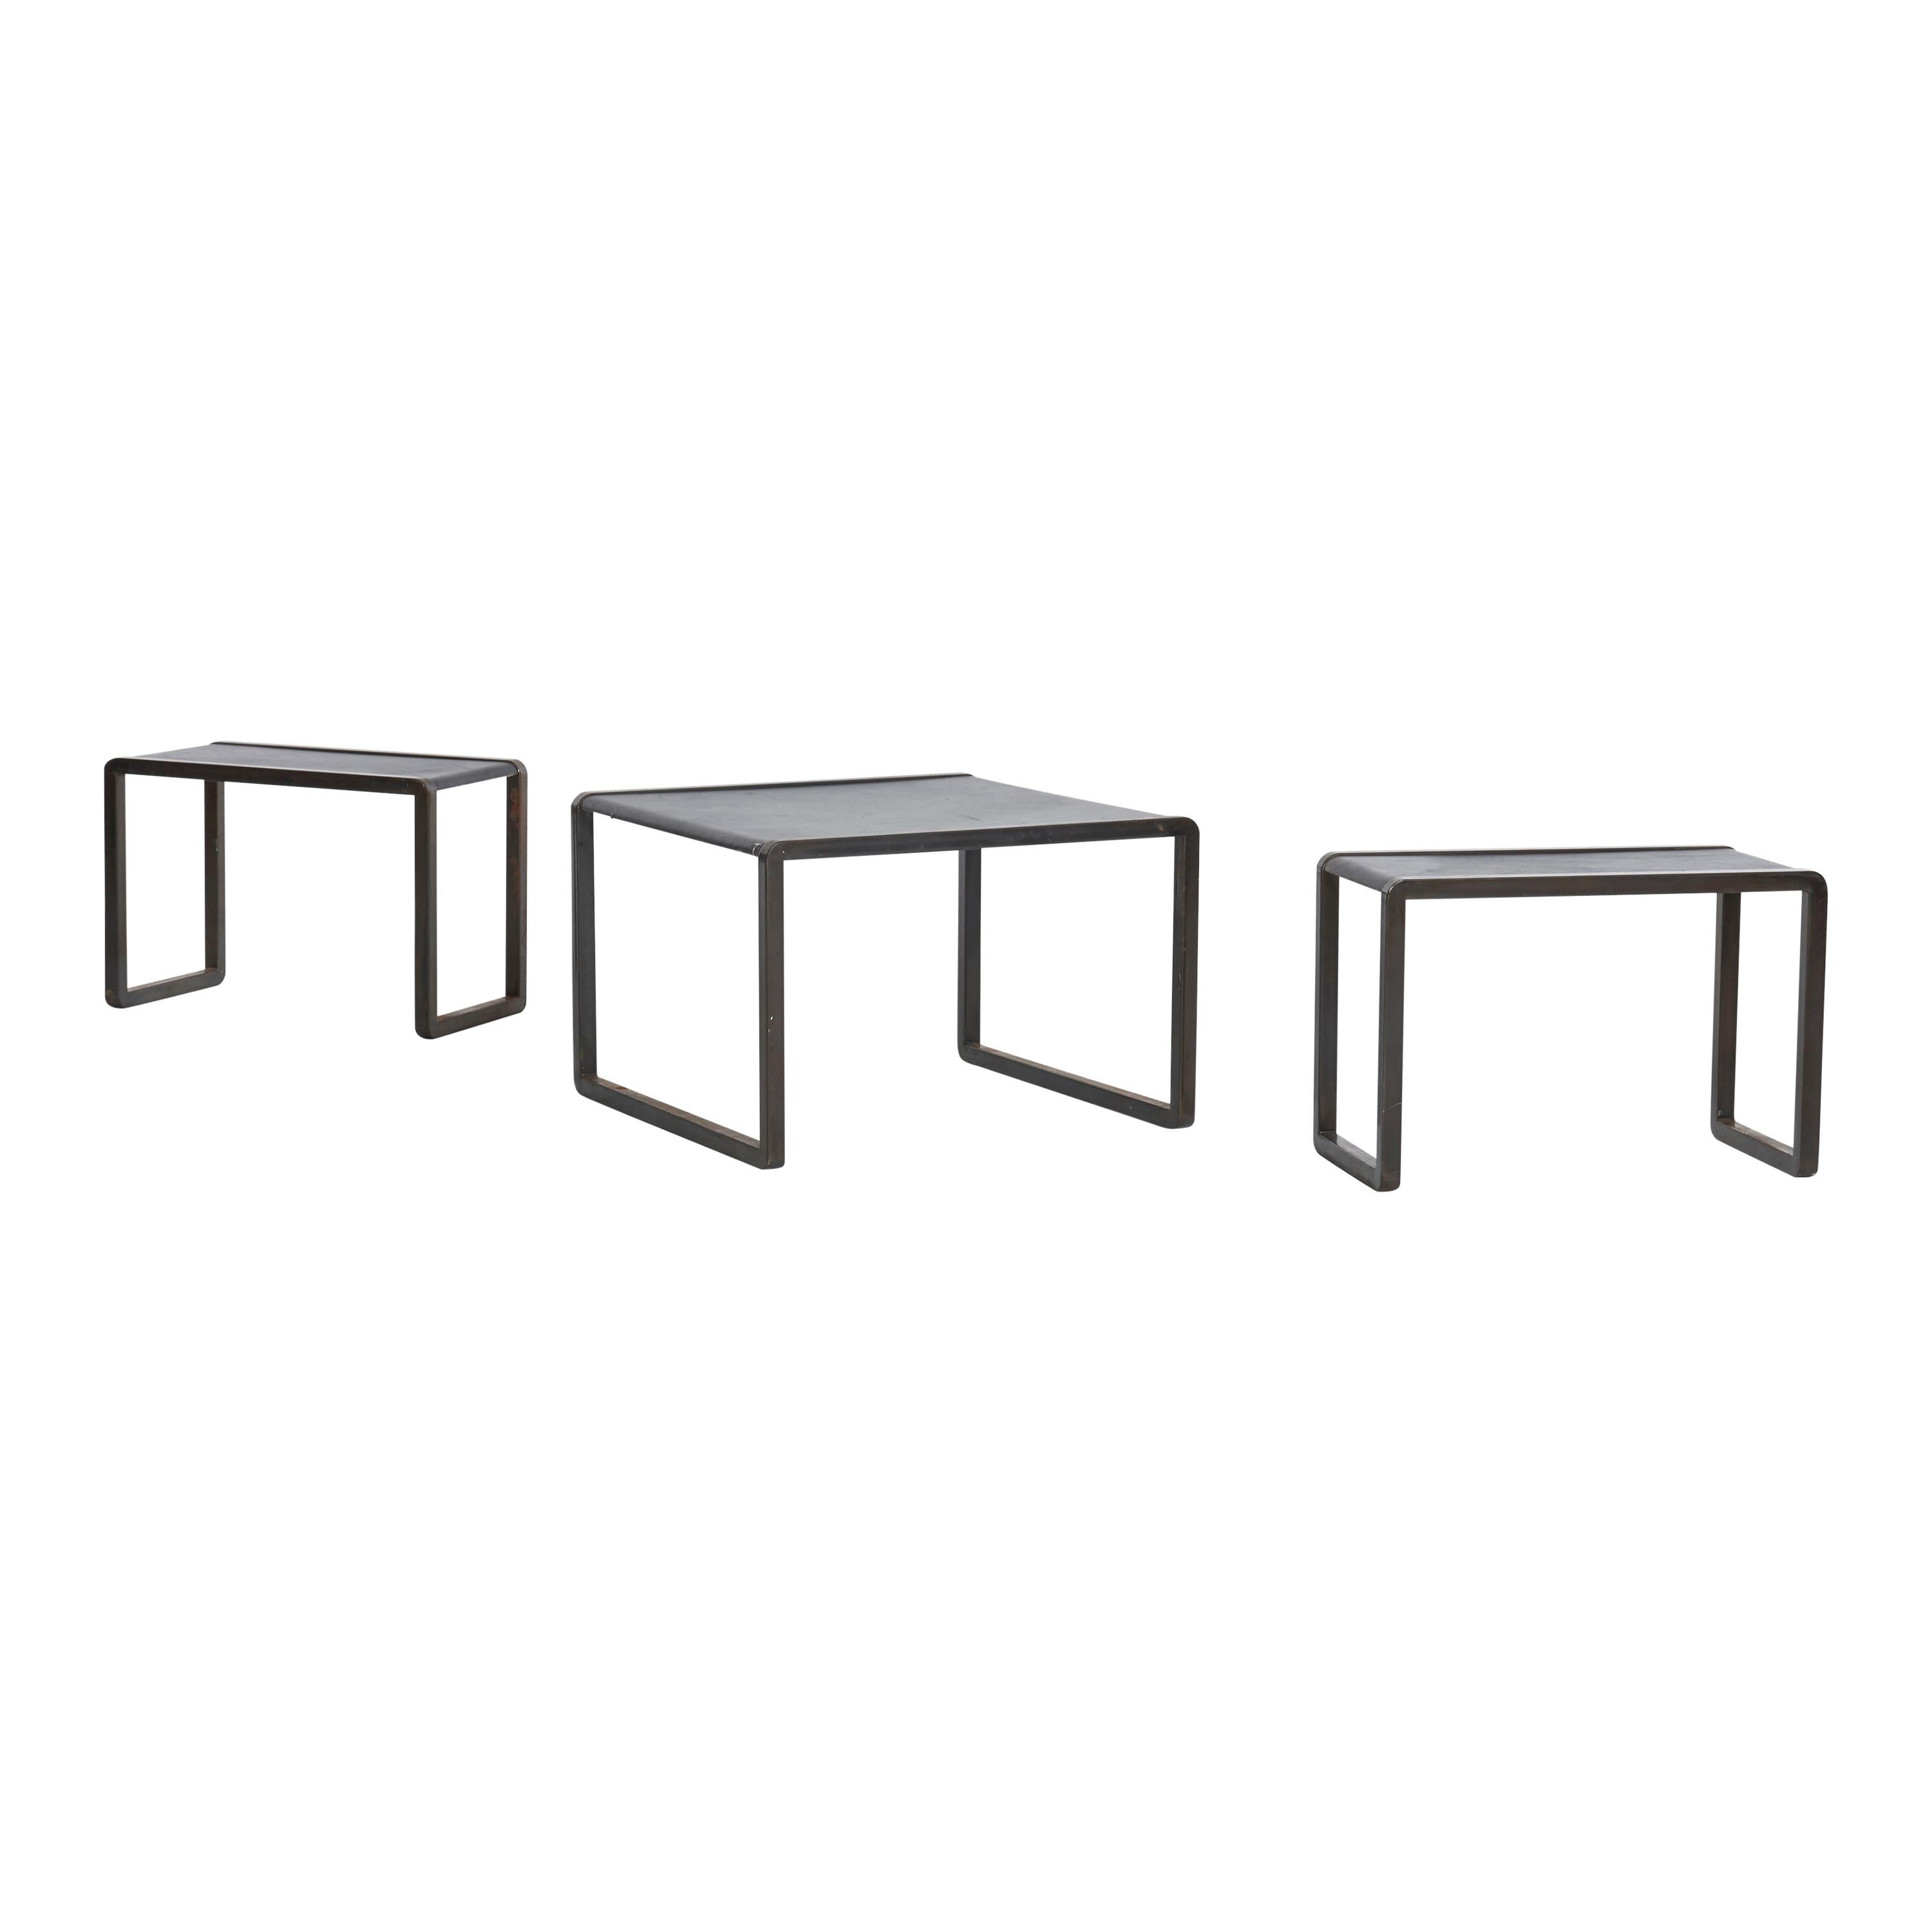 Nesting Tables by Marco Fantoni